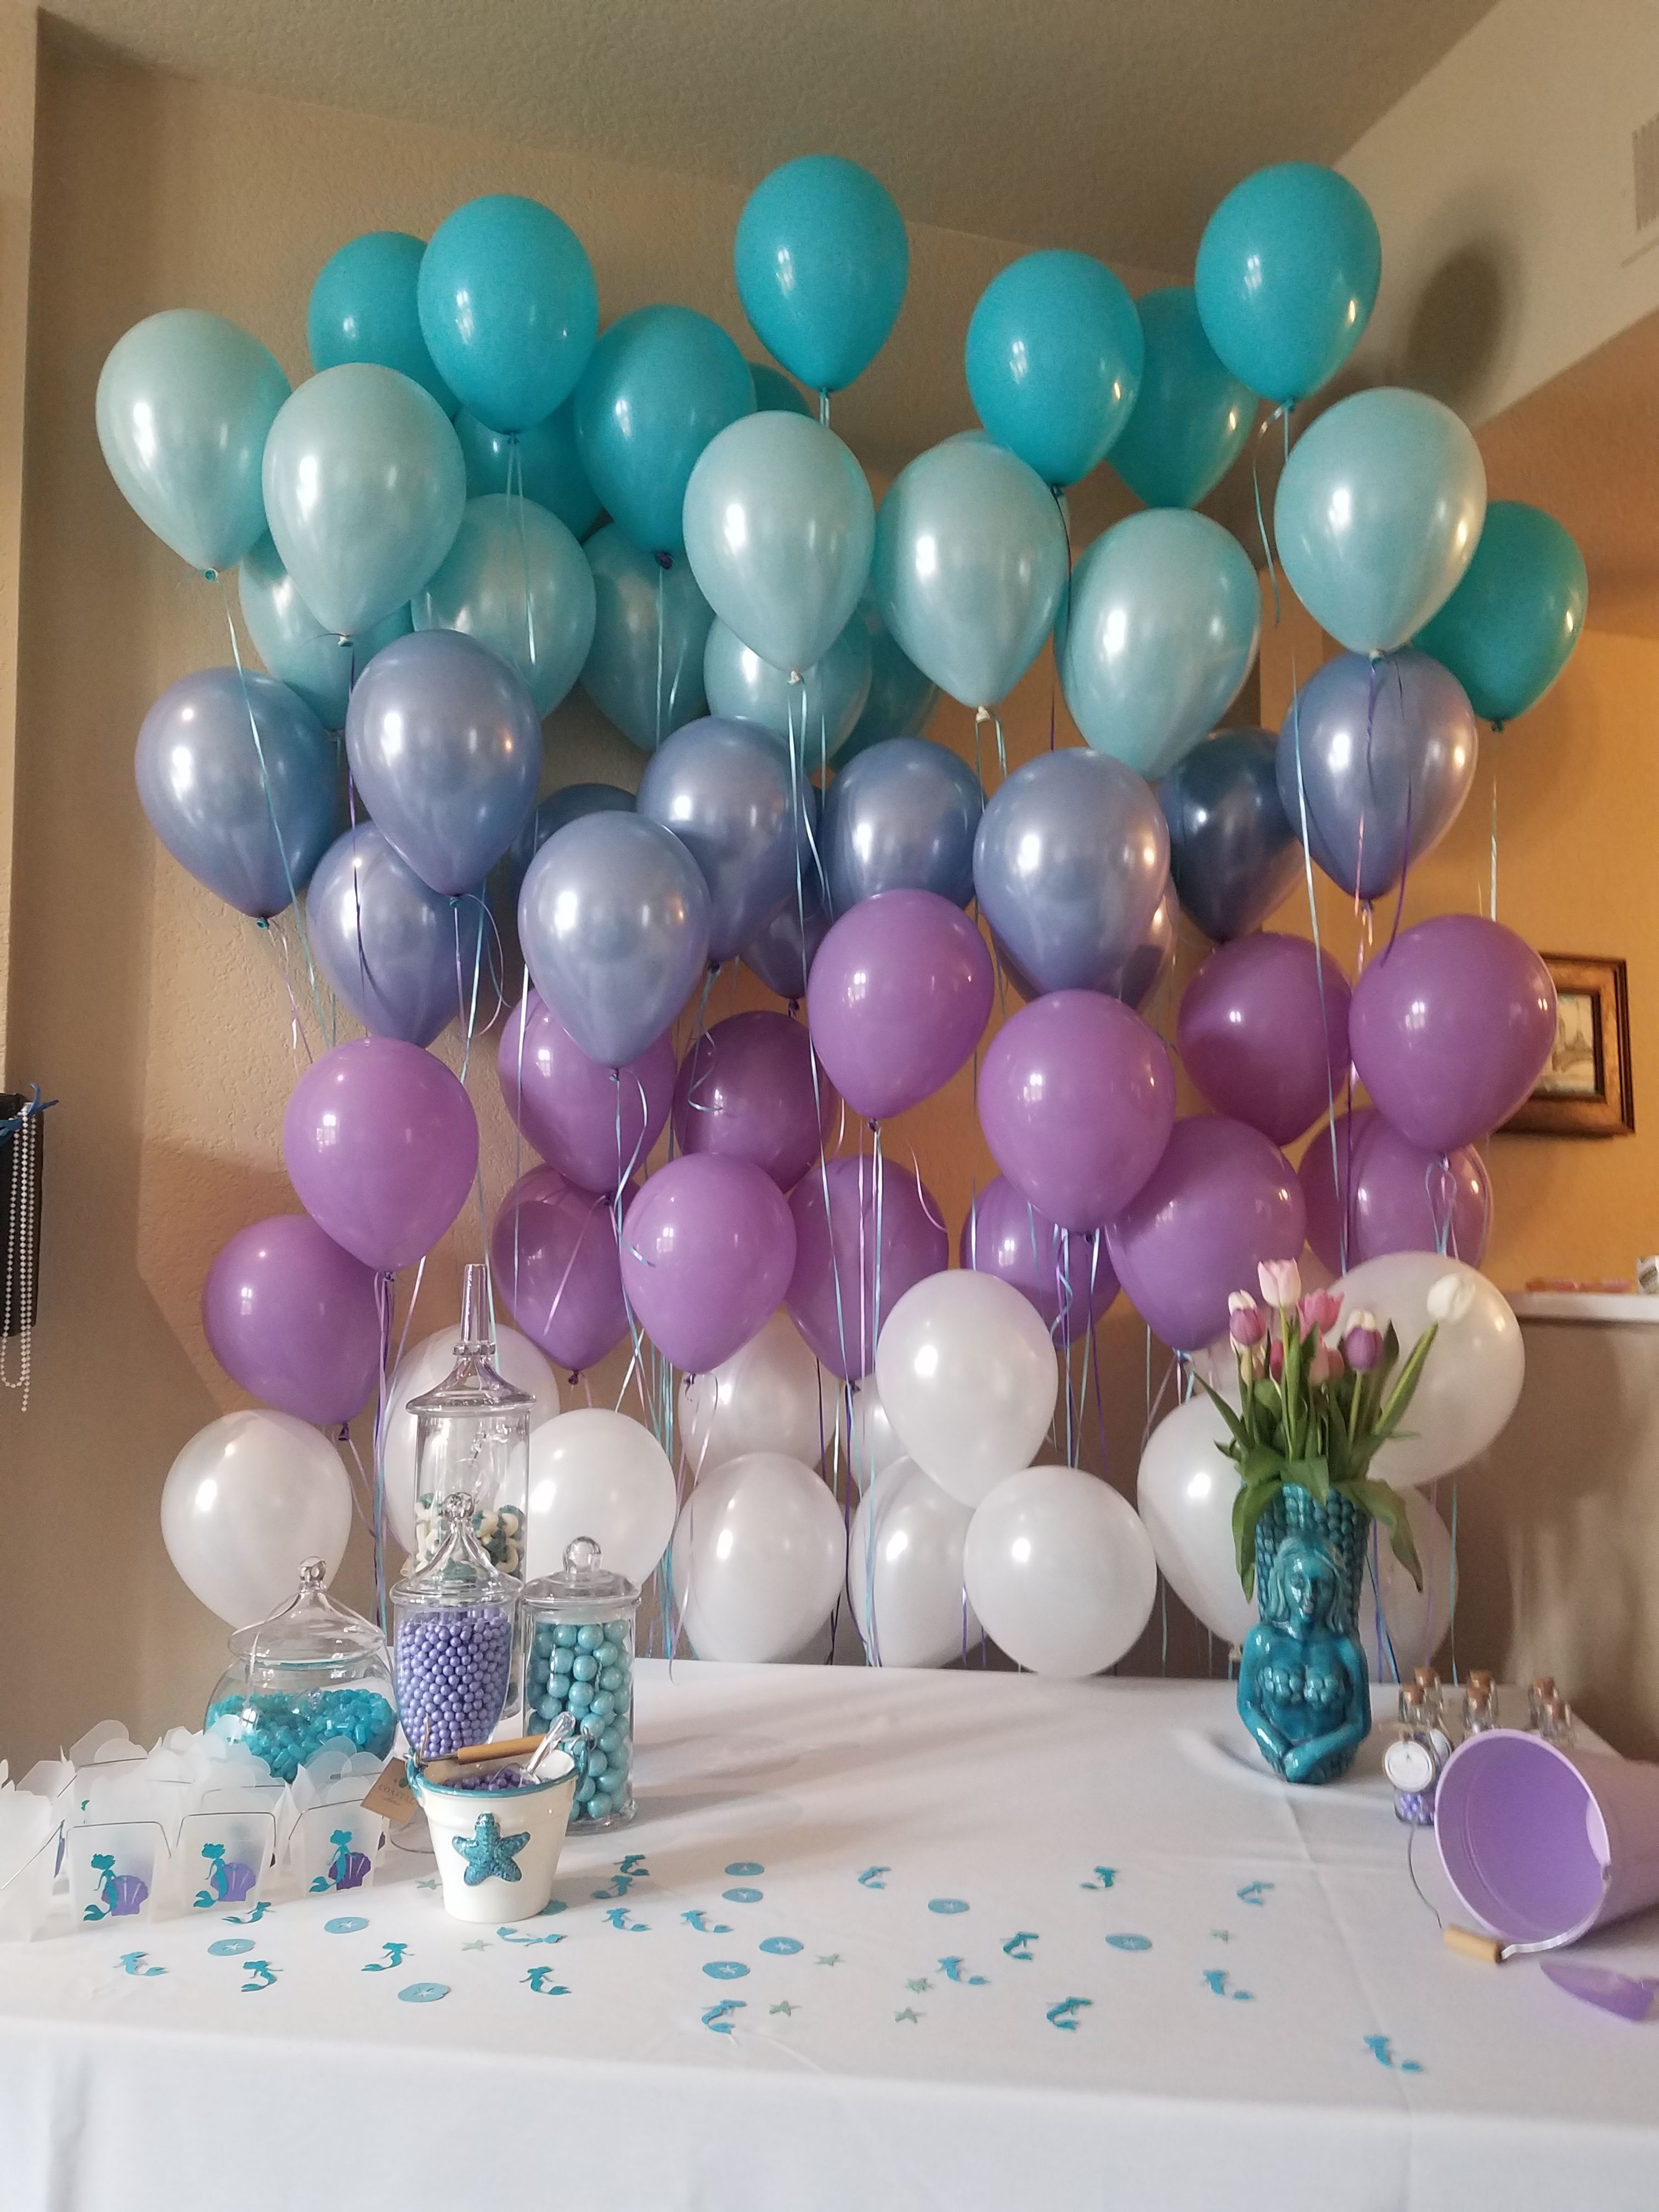 Purple and blue balloon ombre party ideas party decorations My